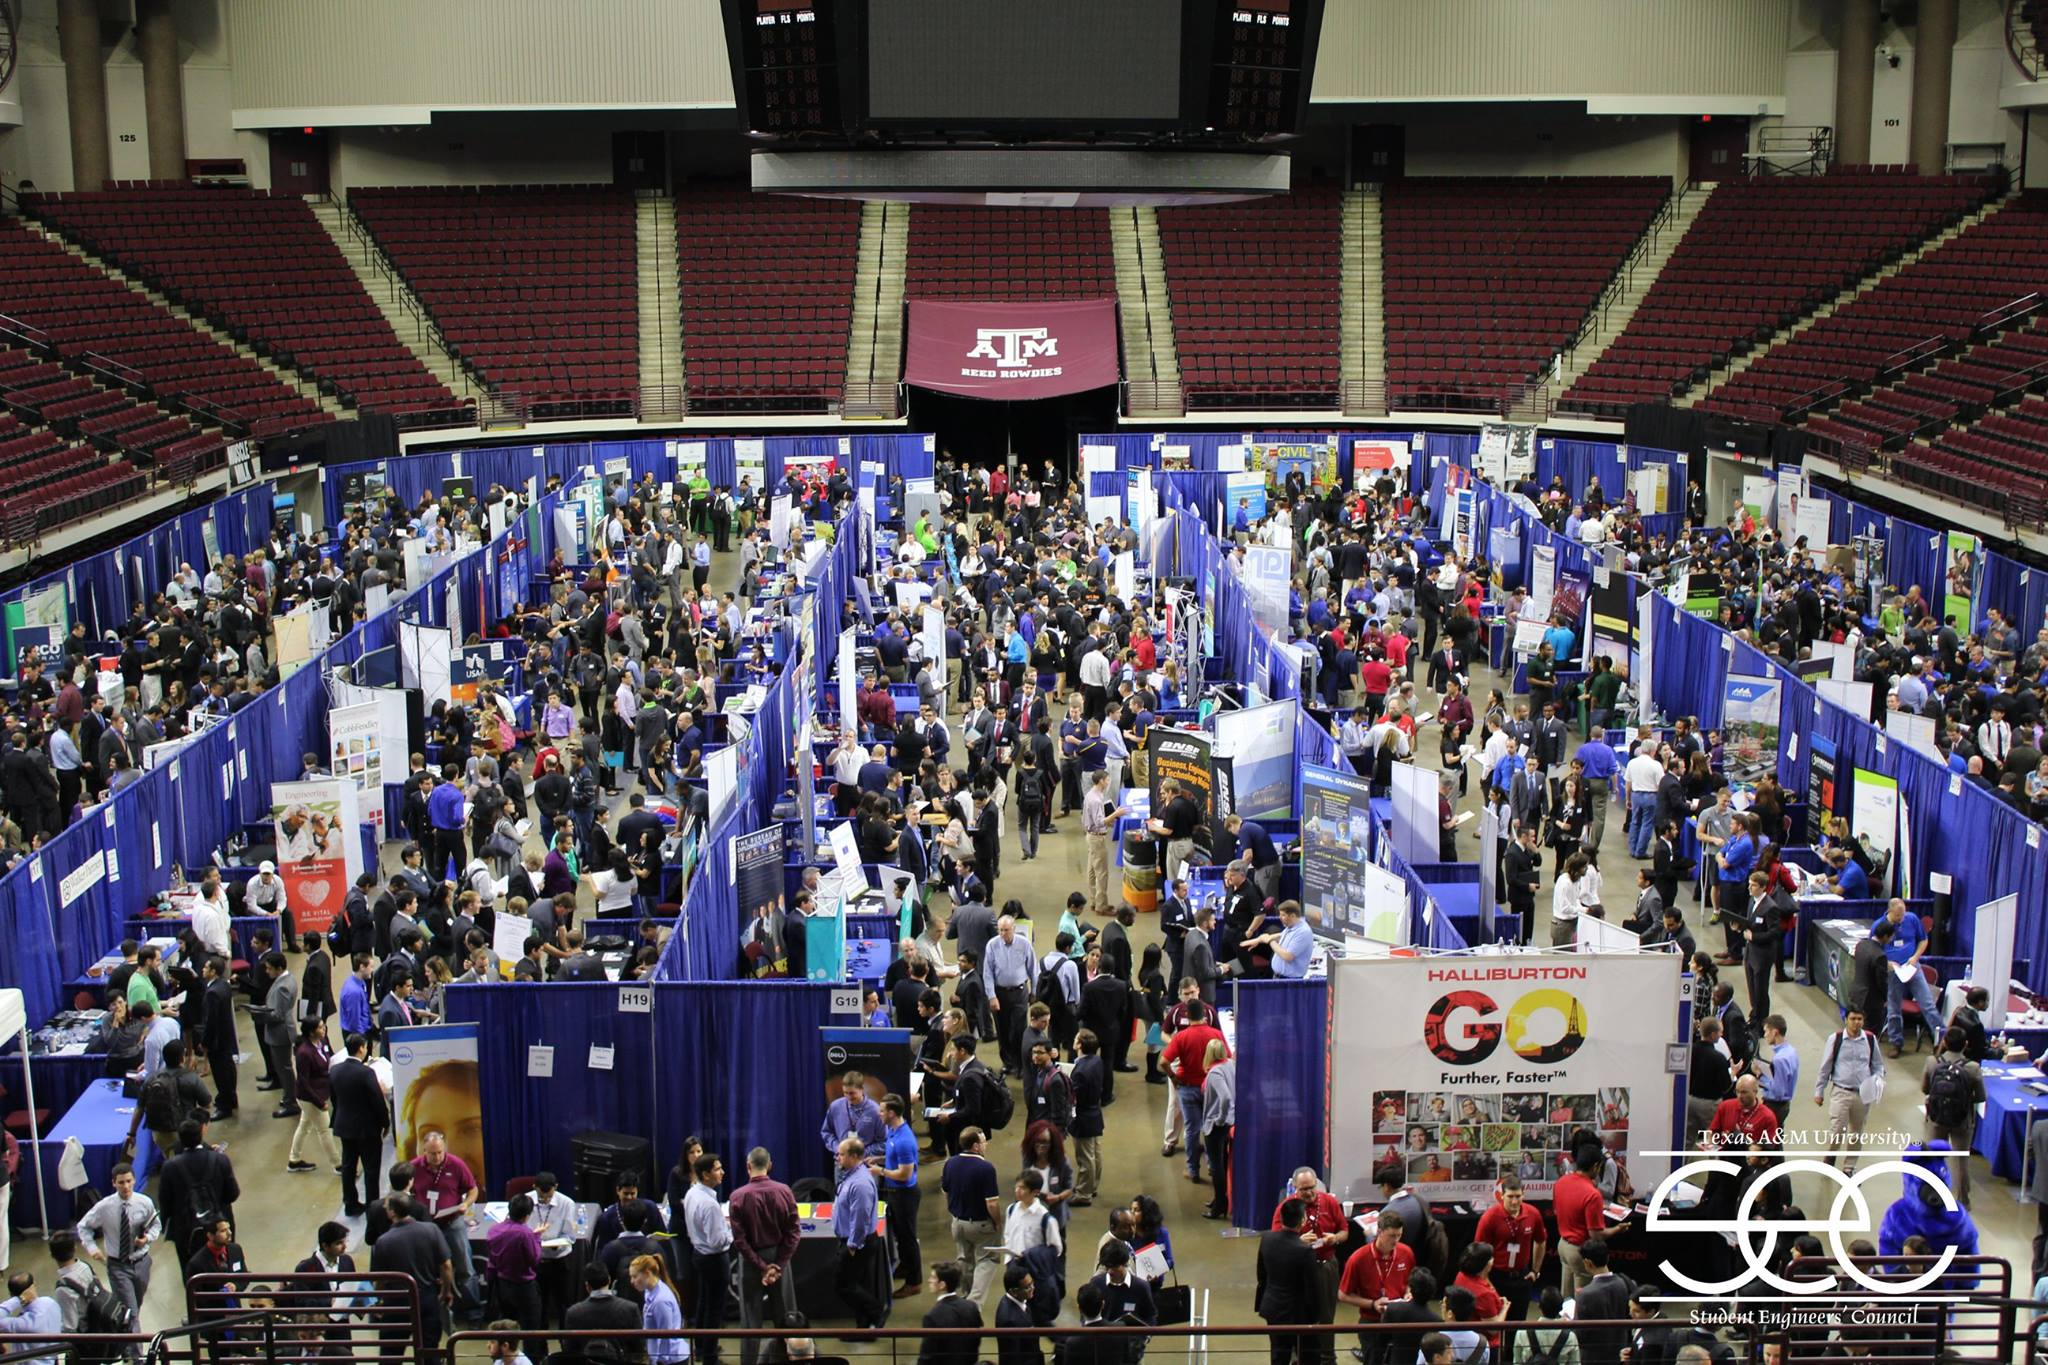 Career Fair Tamu Spring 2020.Career Fair More Like Career Scare